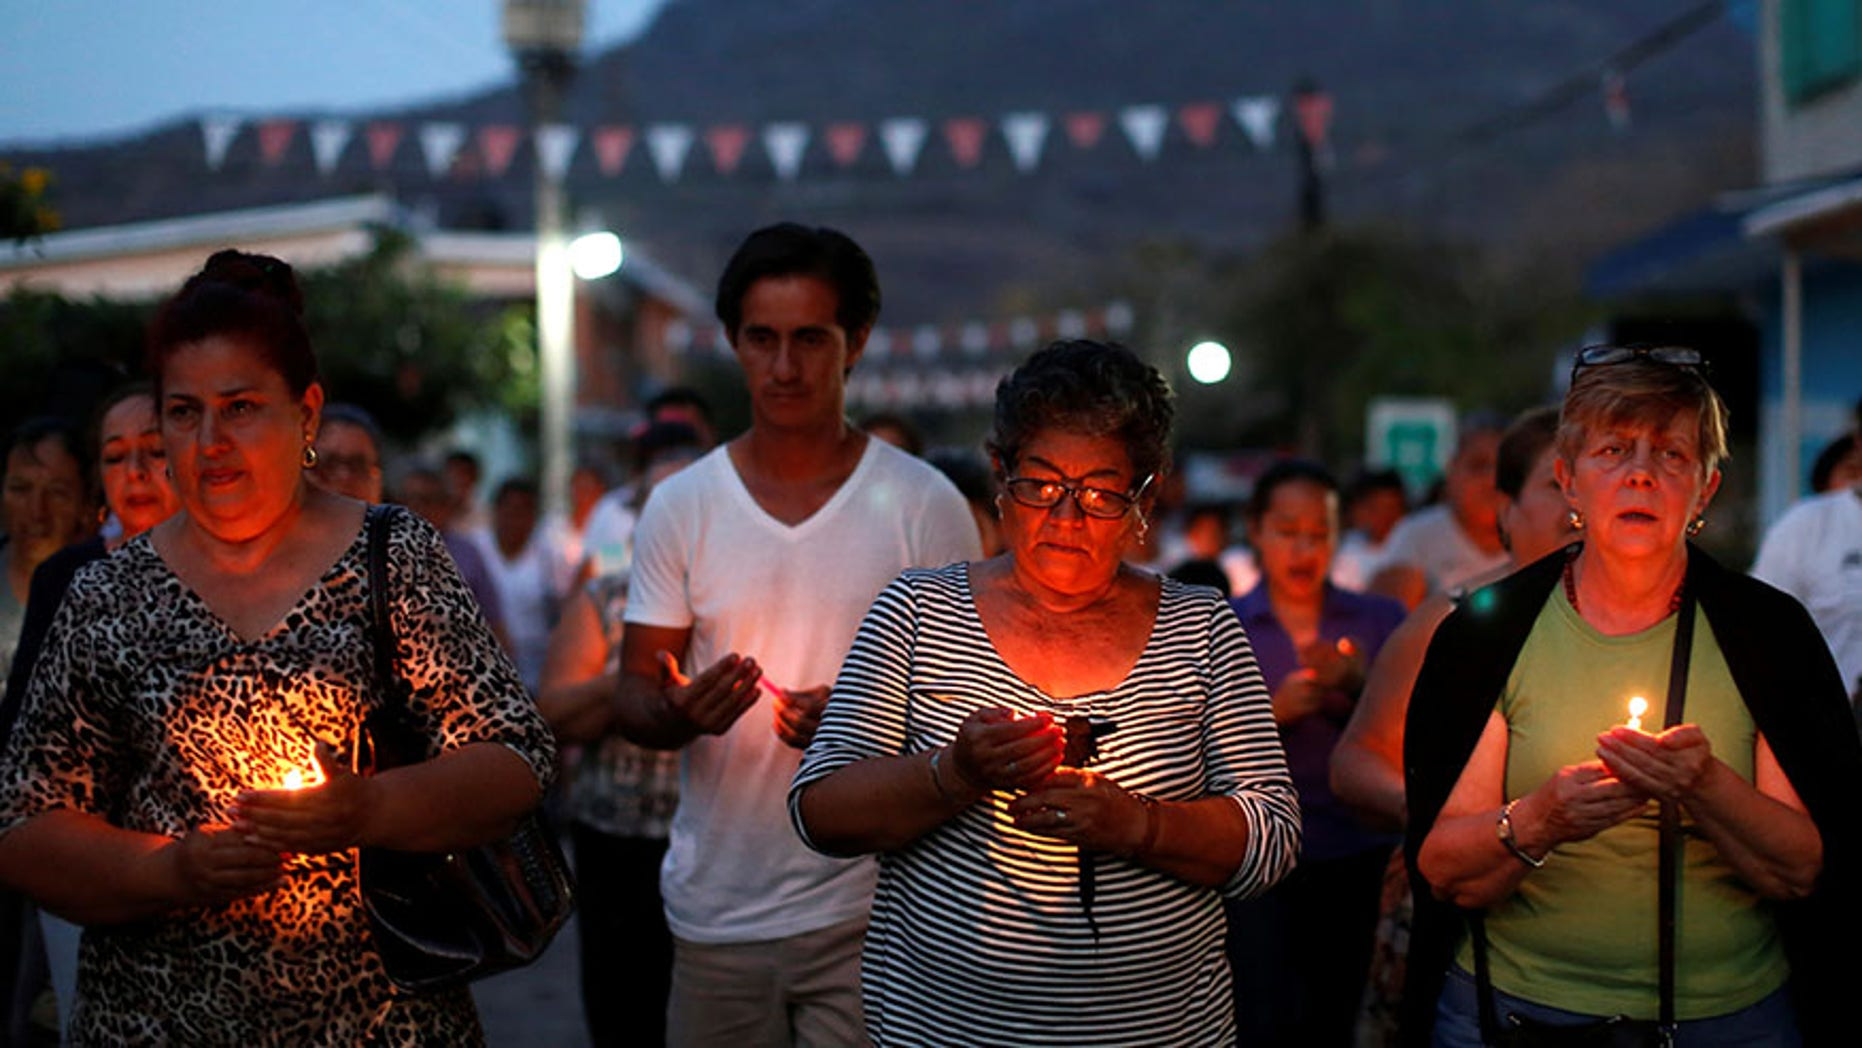 Mothers of missing sons come out of a service of Pedro Alberto Huesca, whose remains were found at one of the unmarked graves in Palmas de Abajo, Veracruz, Mexico on March 16, 2017.